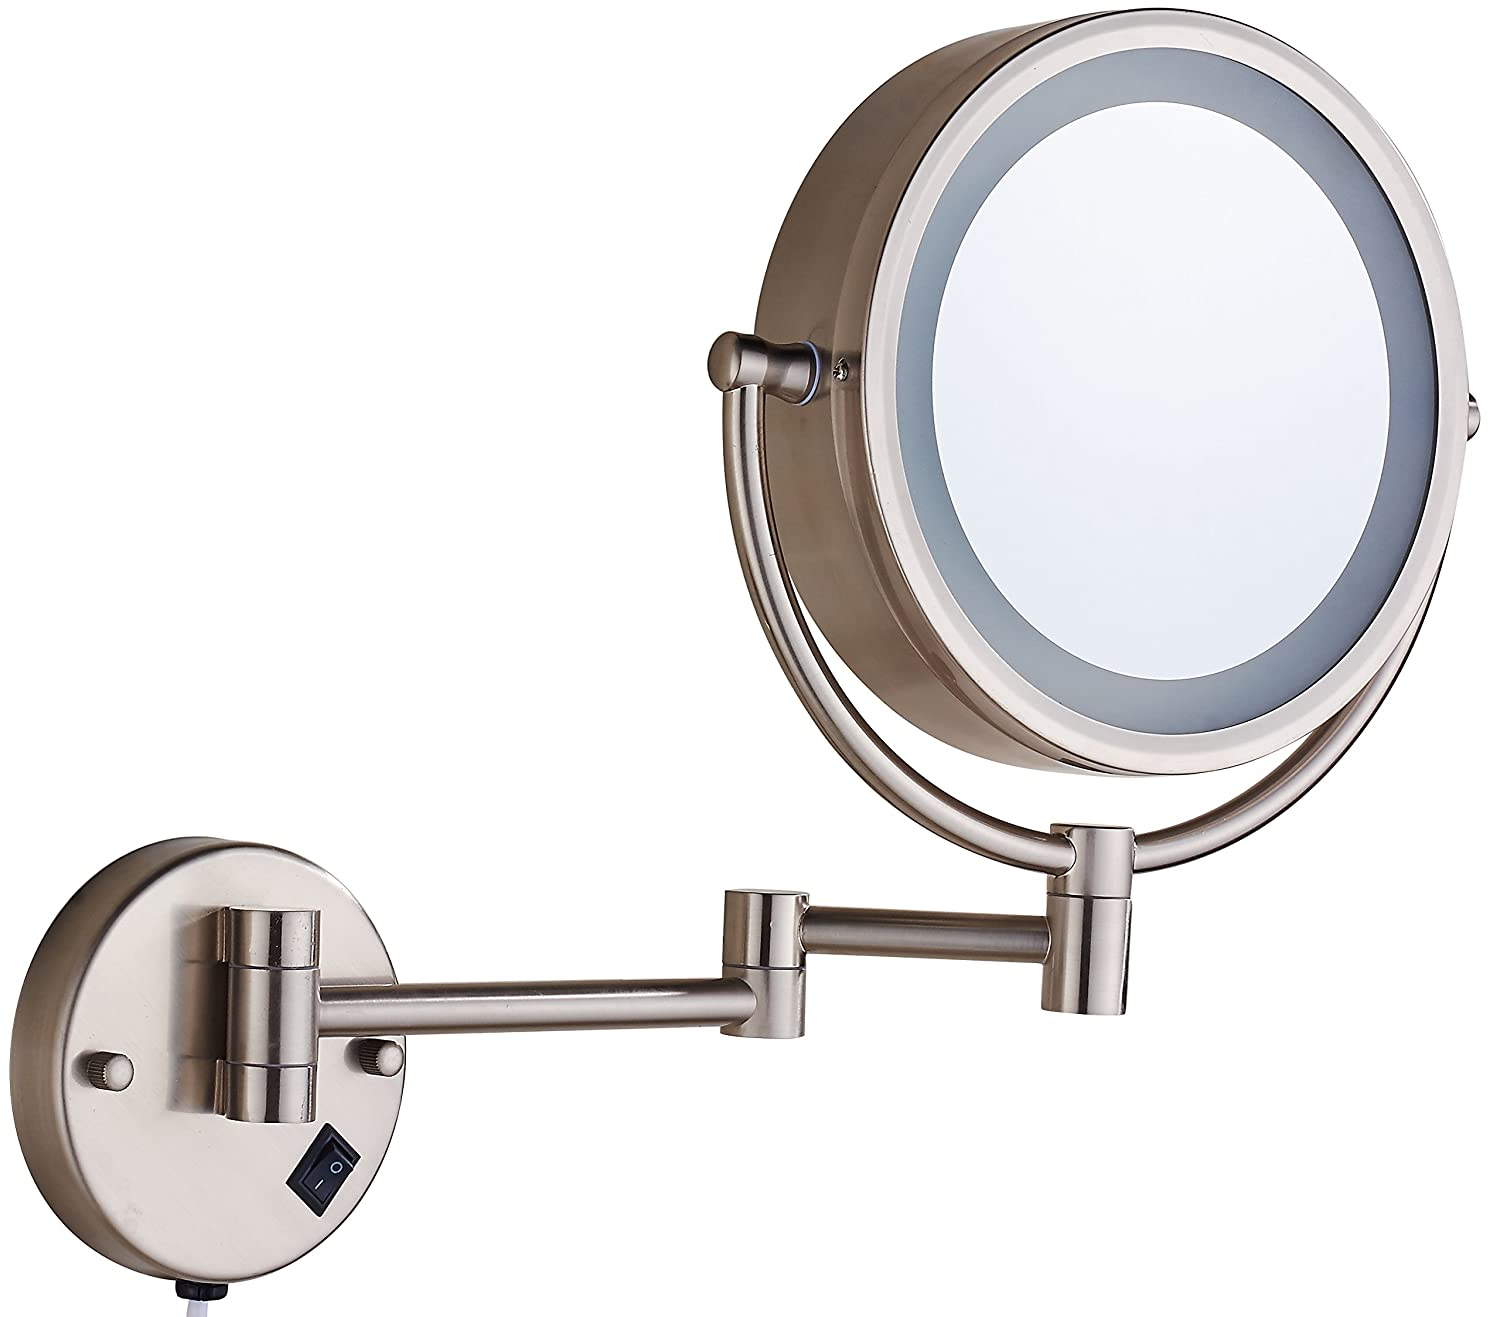 Cavoli Makeup Mirror Wall Mounted with LED Lighted 7x Magnification Double Sided, Nickel Finish, (8.5-inch,7x)